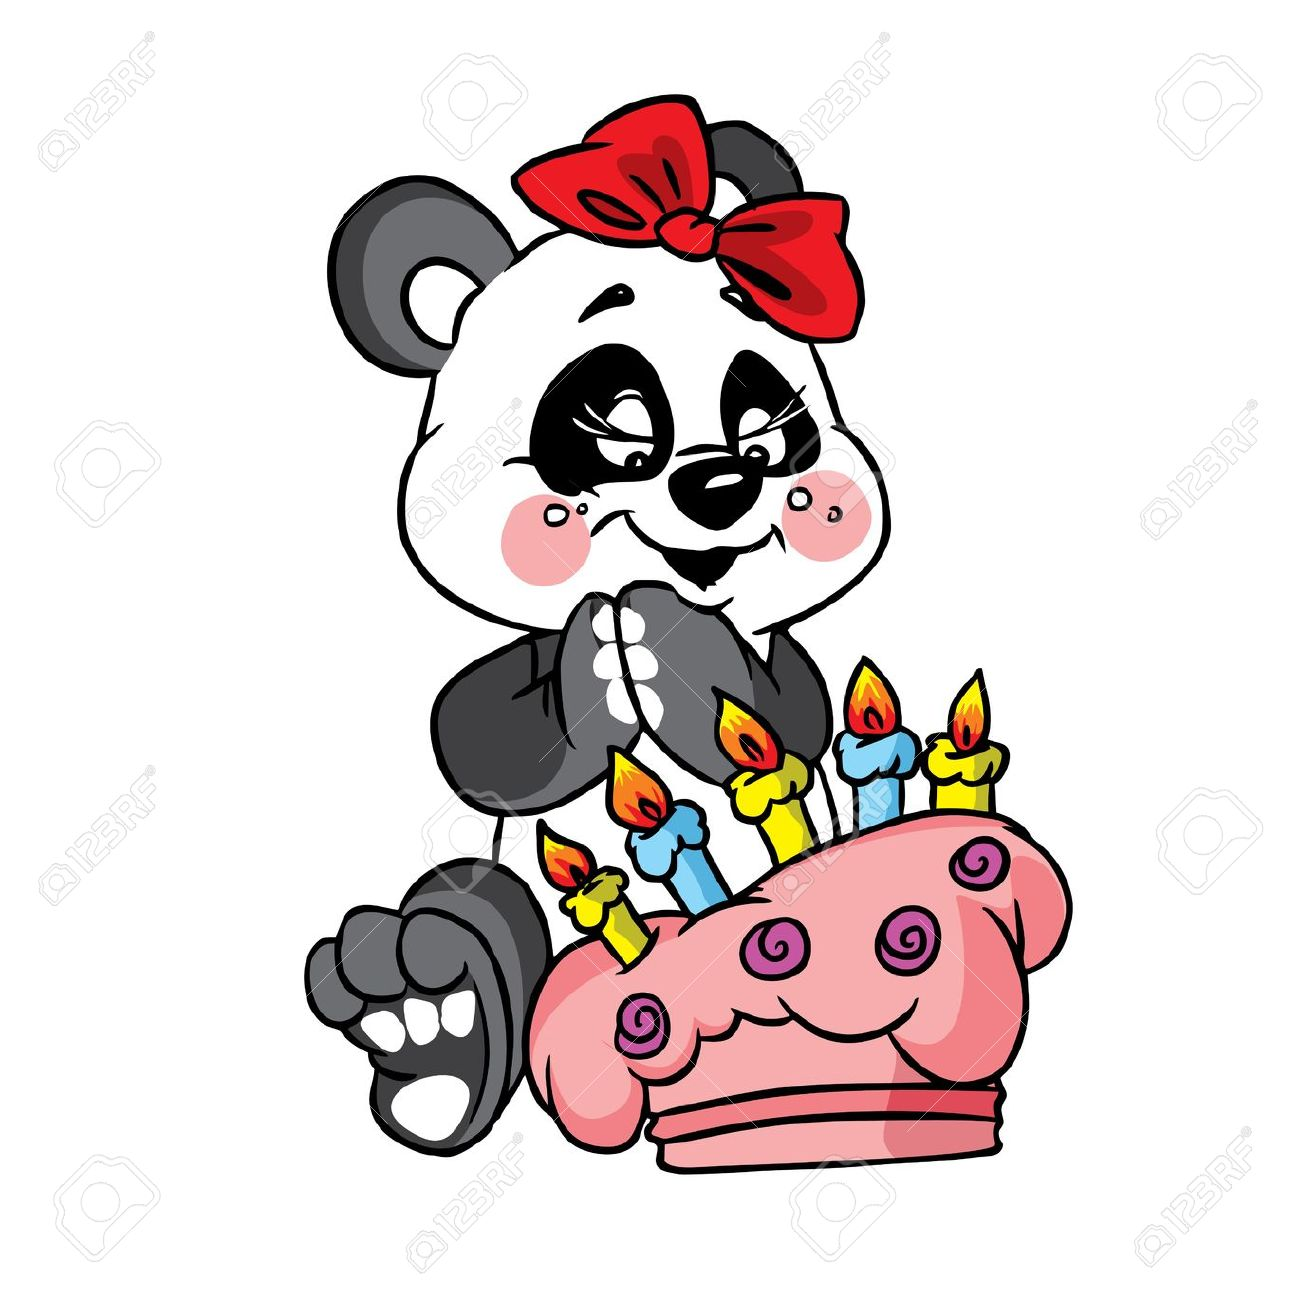 Happy Birthday Cartoon Images Free Download Best Happy